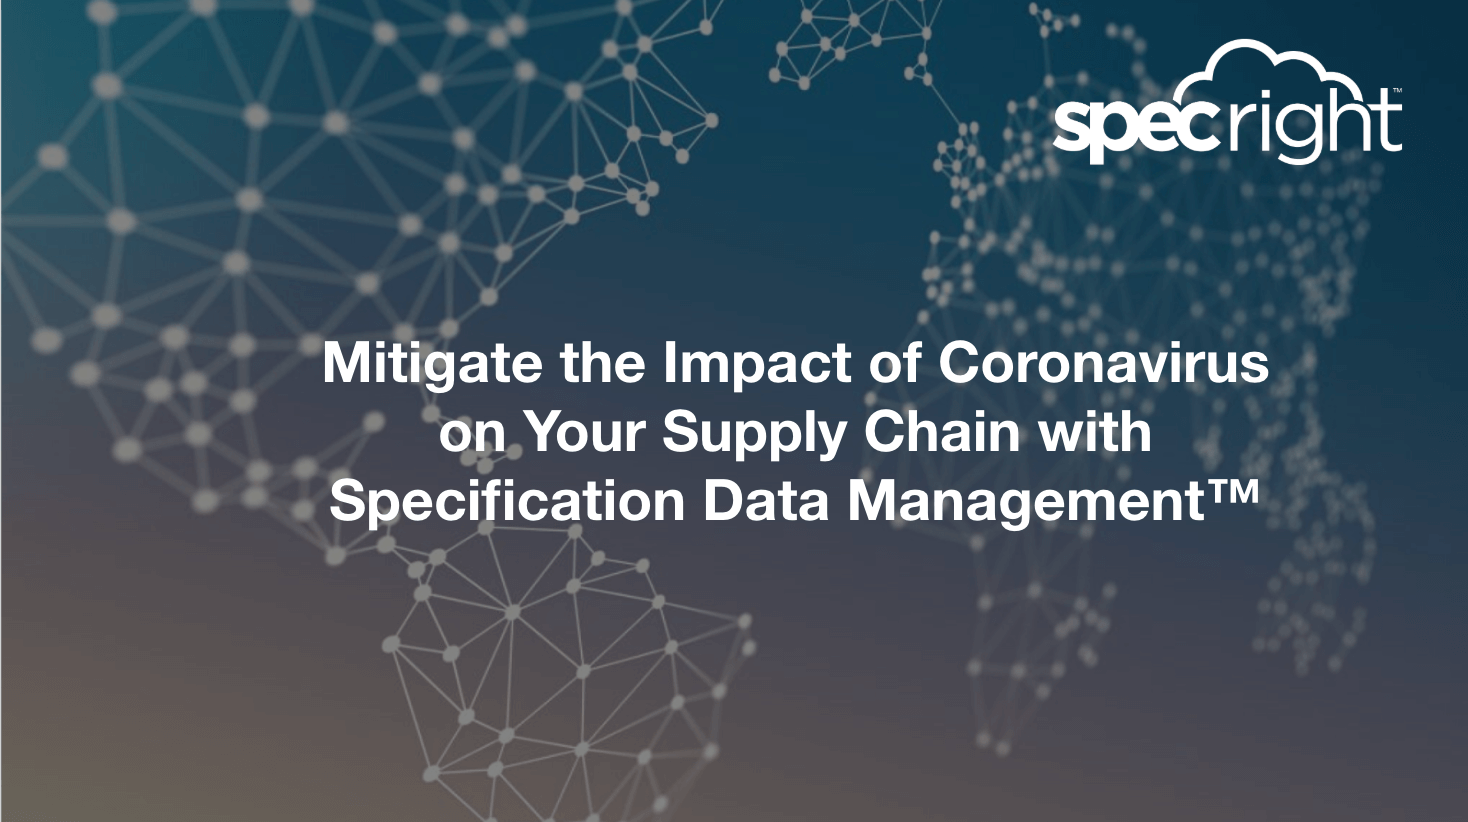 Webinar: Mitigate the Impact of Coronavirus on Your Supply Chain with Specification Data Management